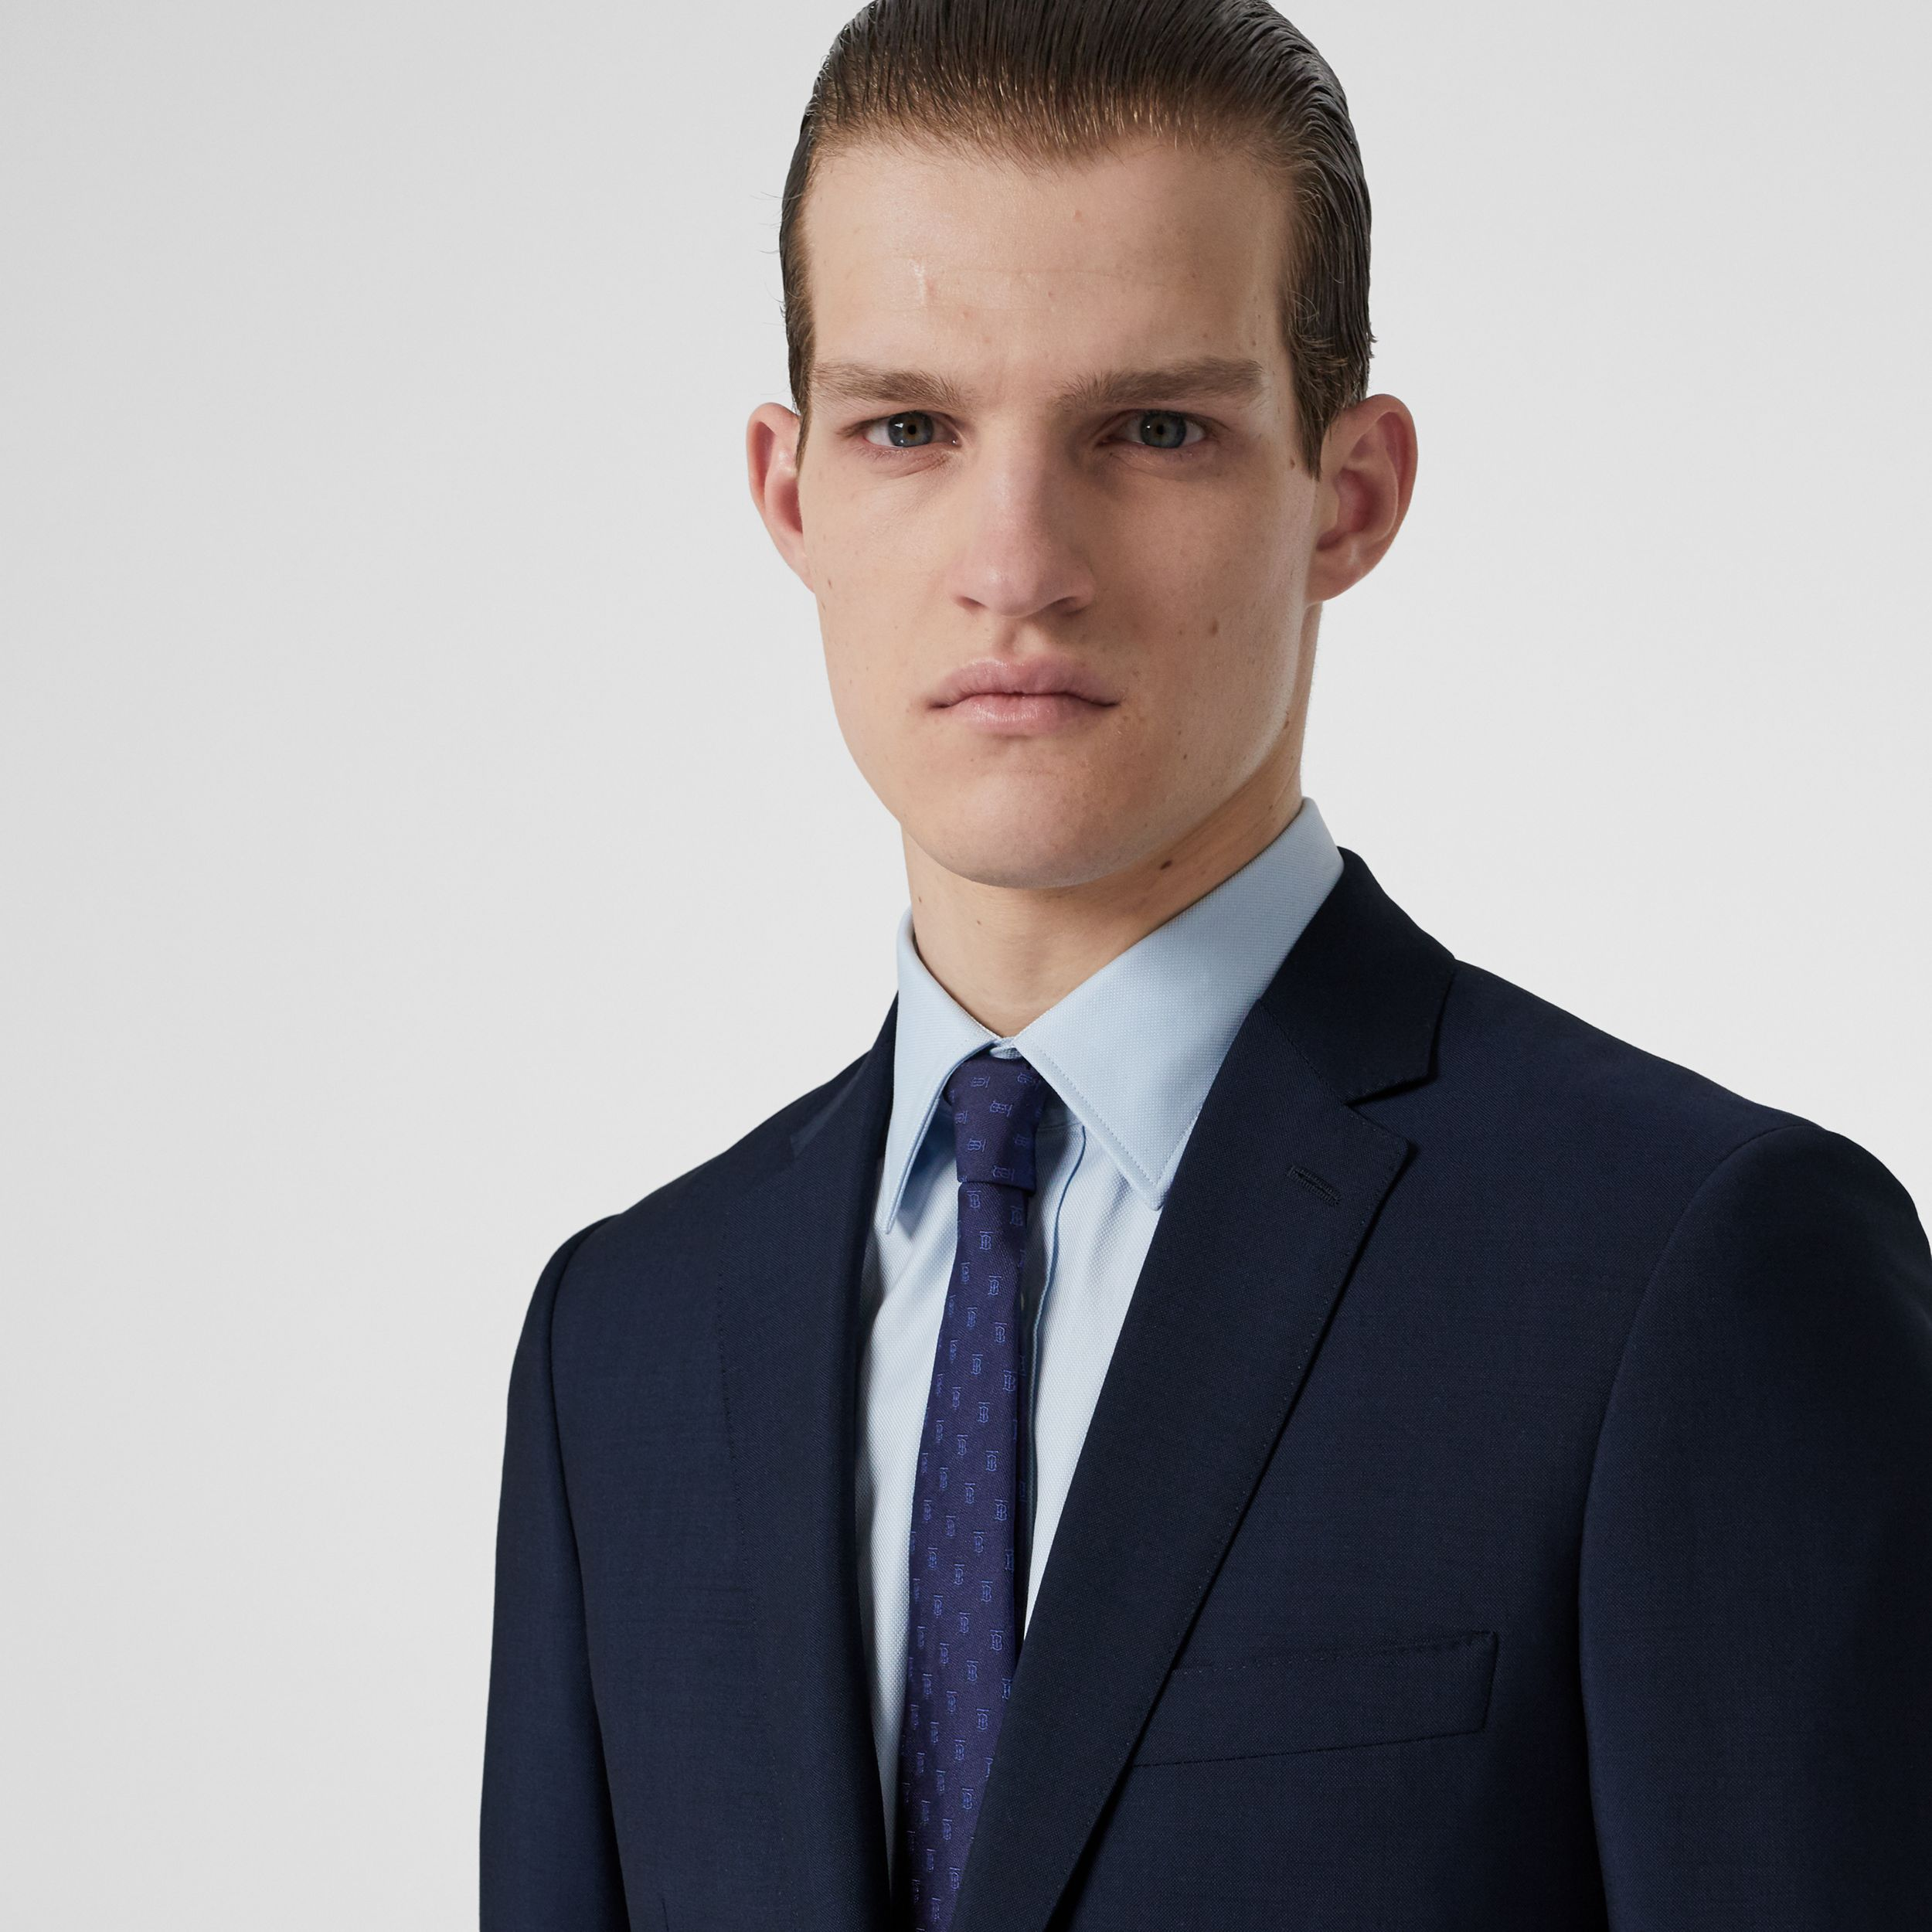 Slim Fit Wool Mohair Suit in Navy - Men | Burberry - 2